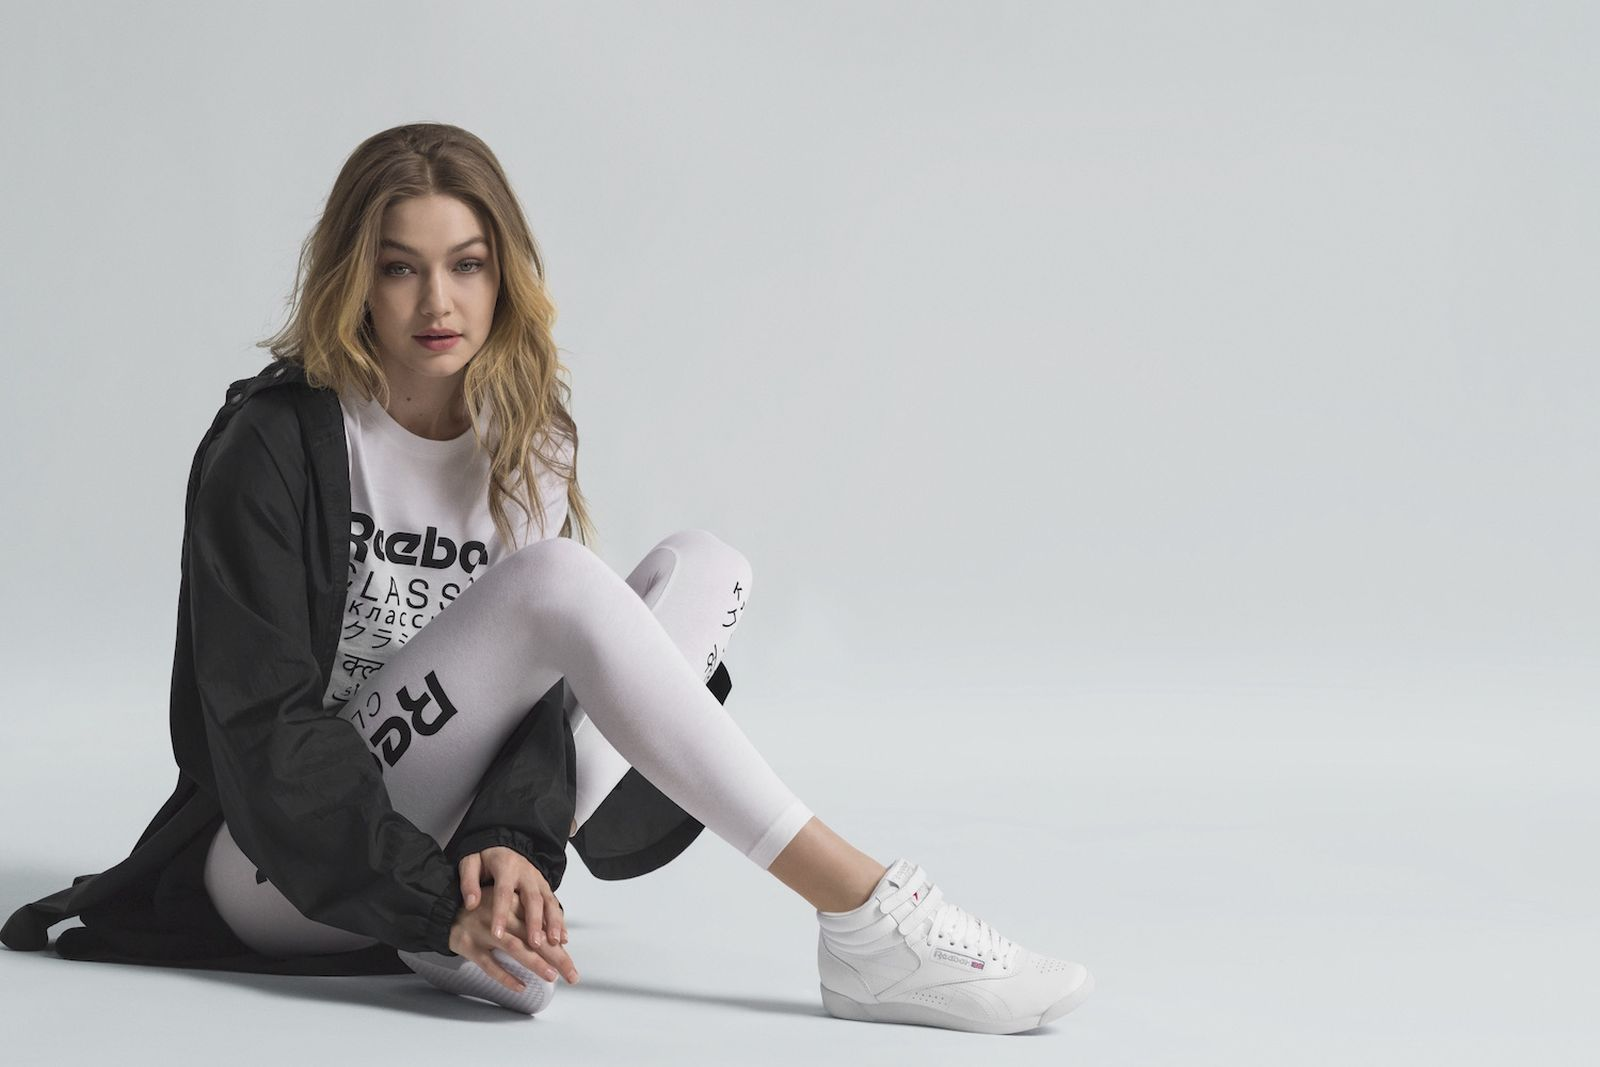 reebok be more human campaign